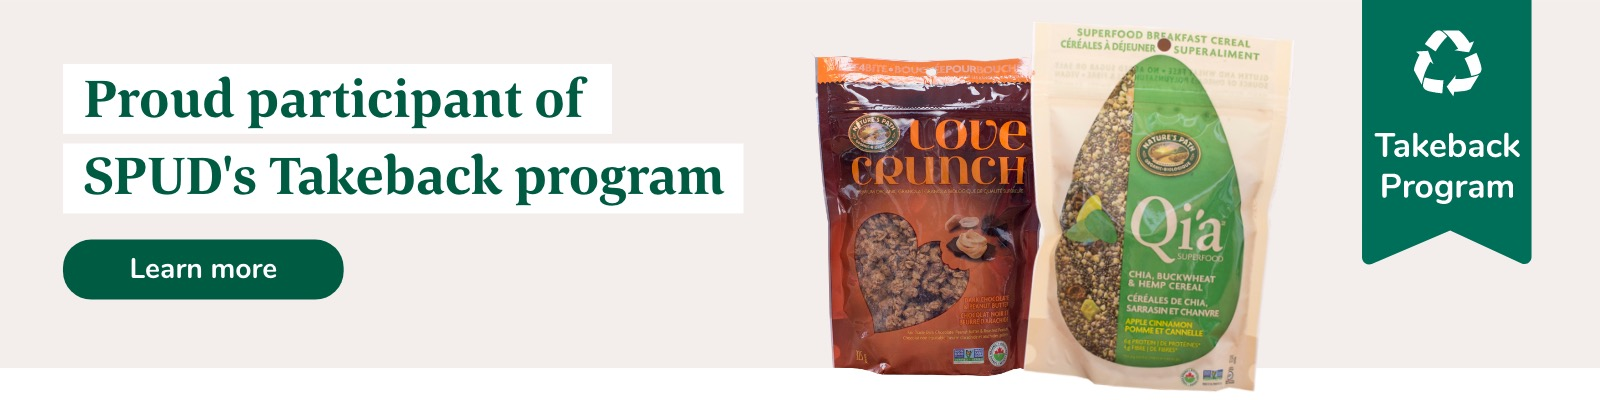 Nature's Path is a proud participant of the Take Back Program